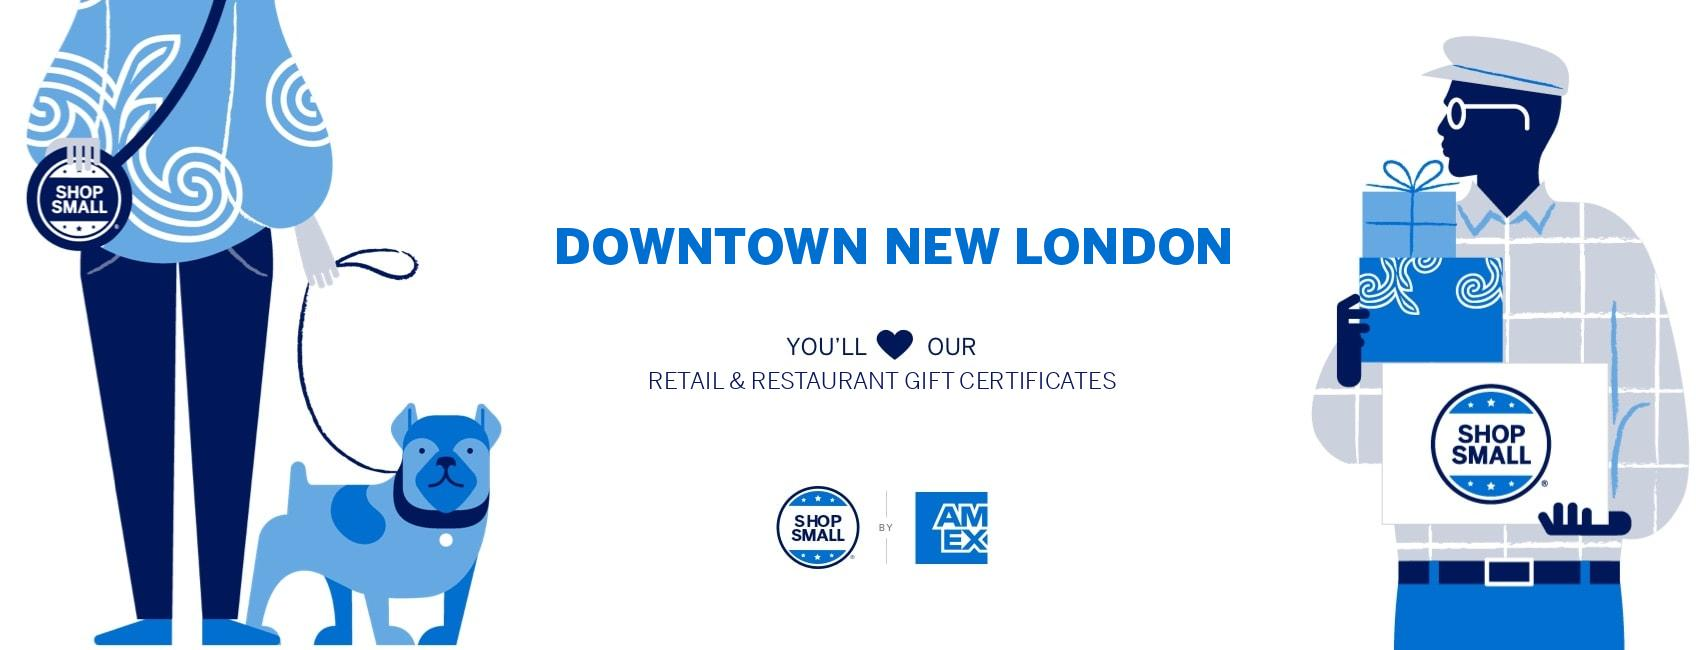 Buy Gift Certificates to Support New London Businesses!